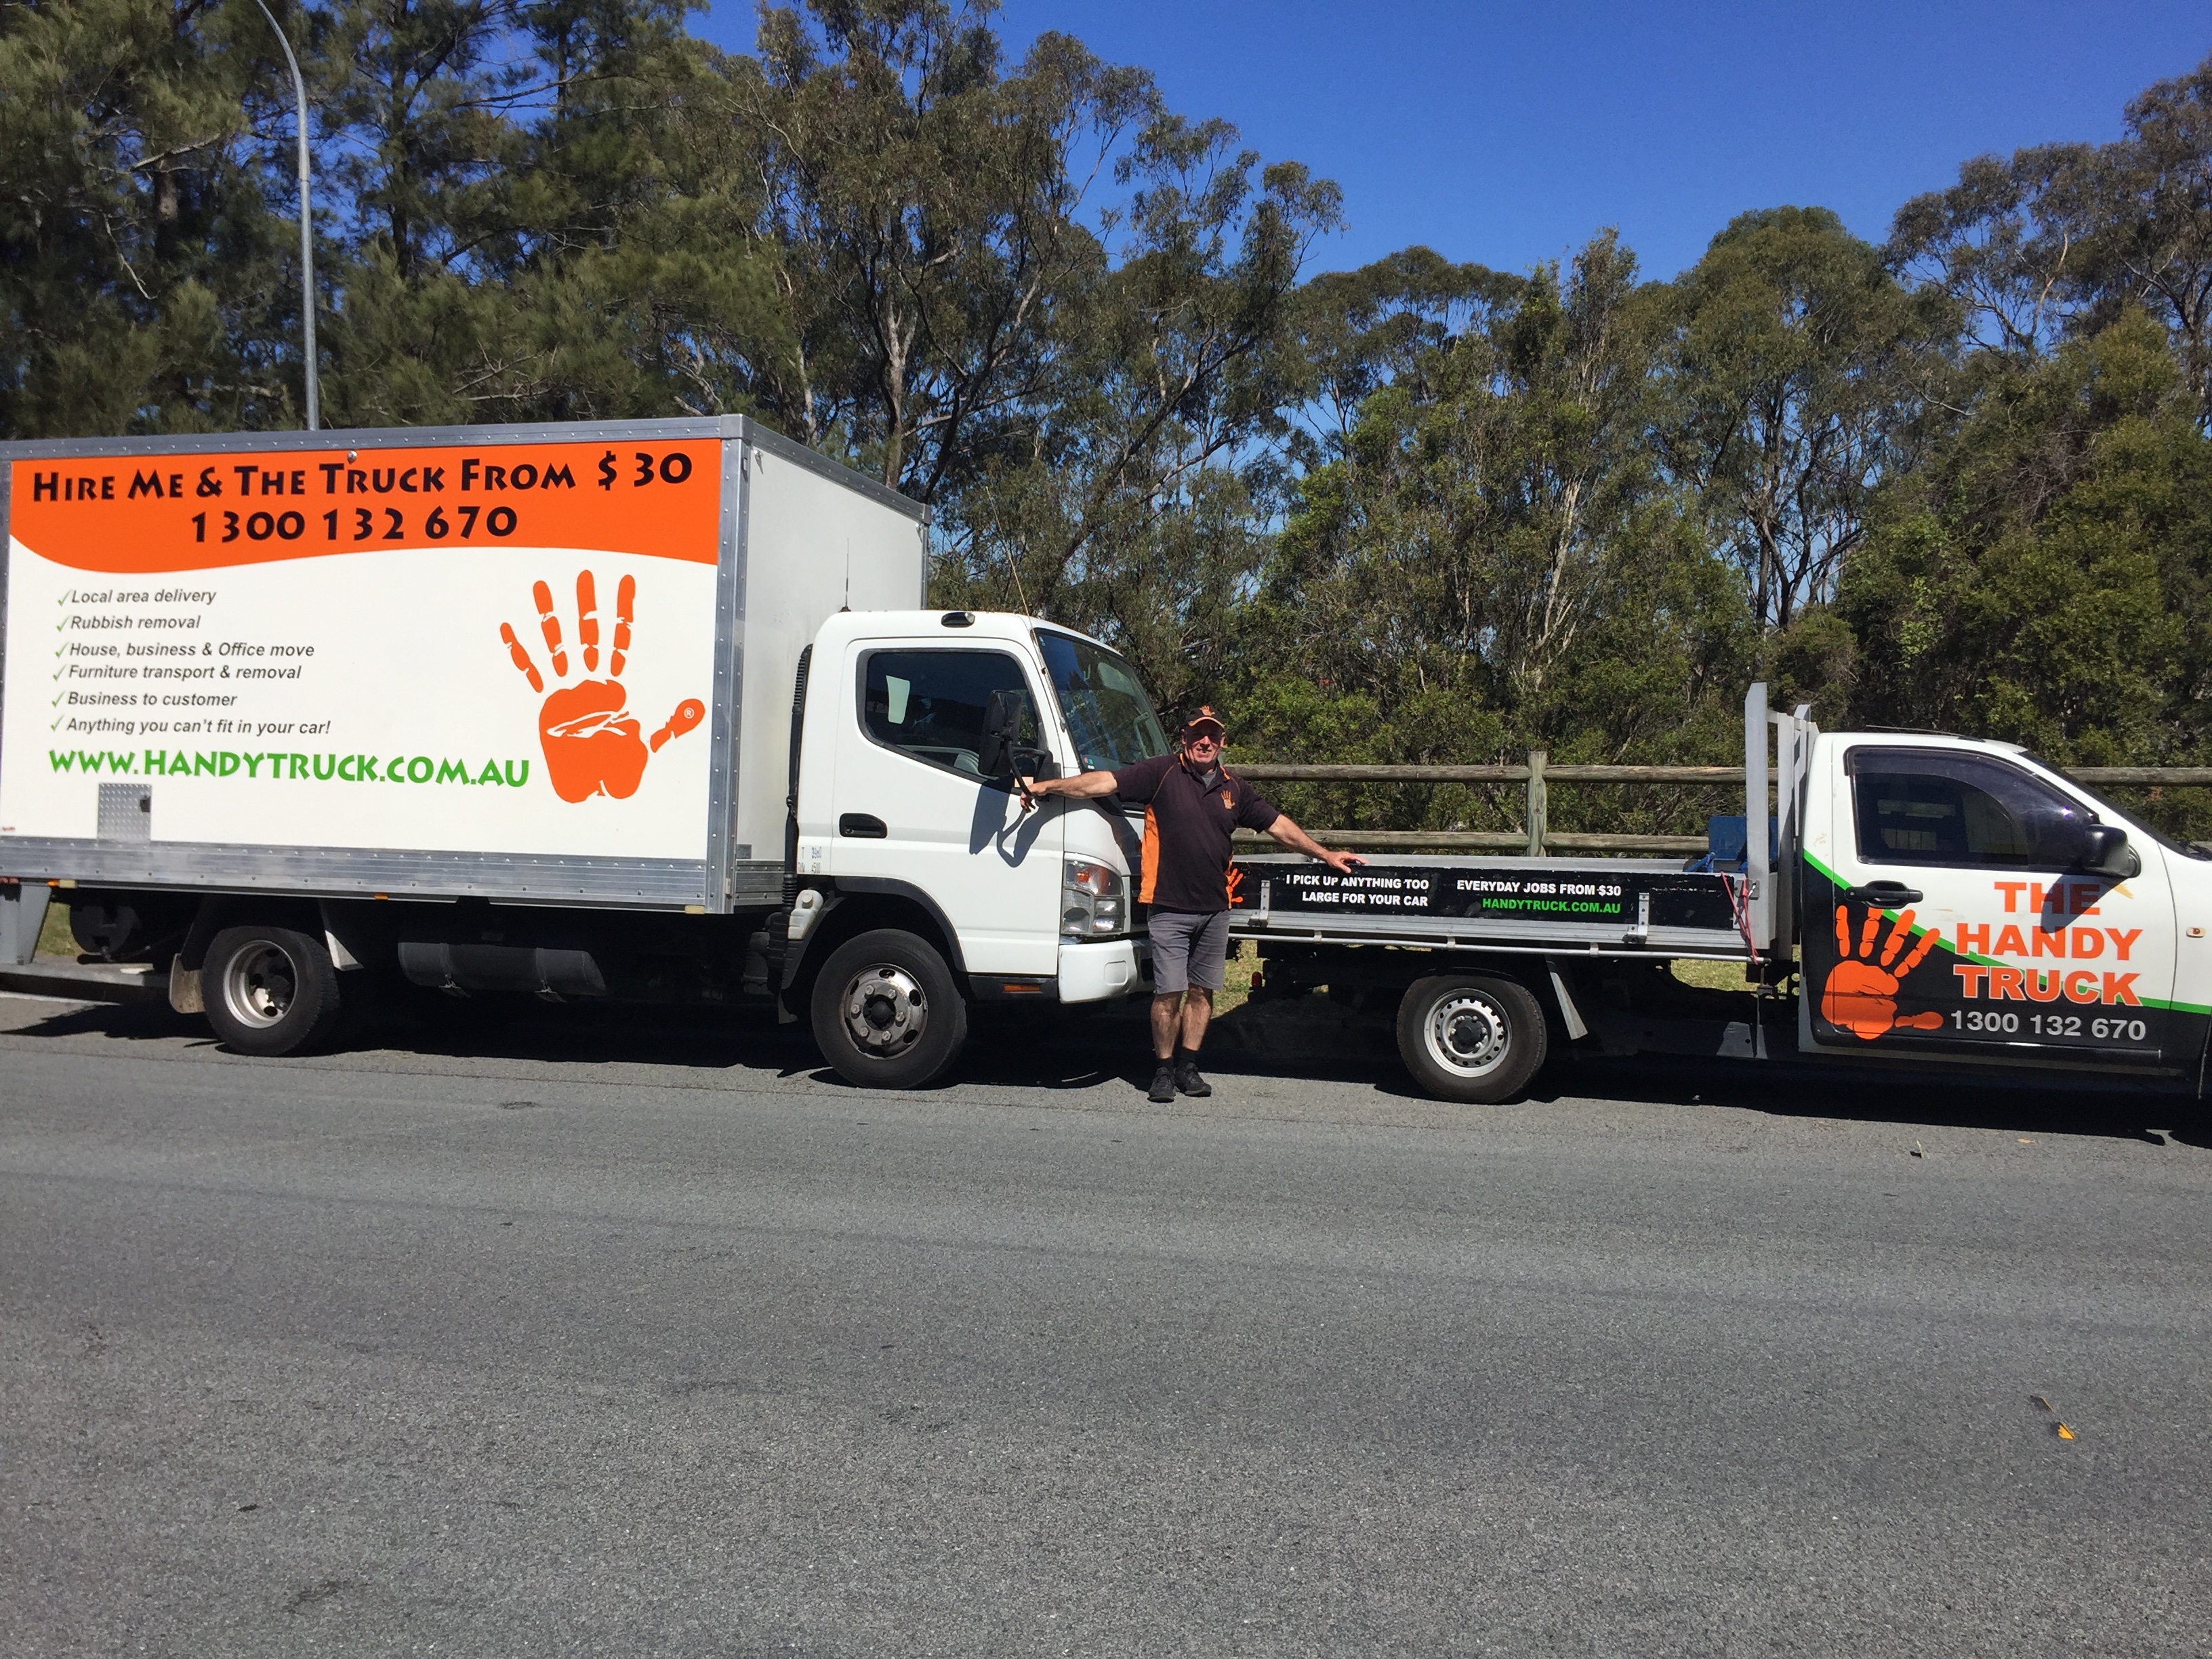 Your delivery and removalist service in Maryborough